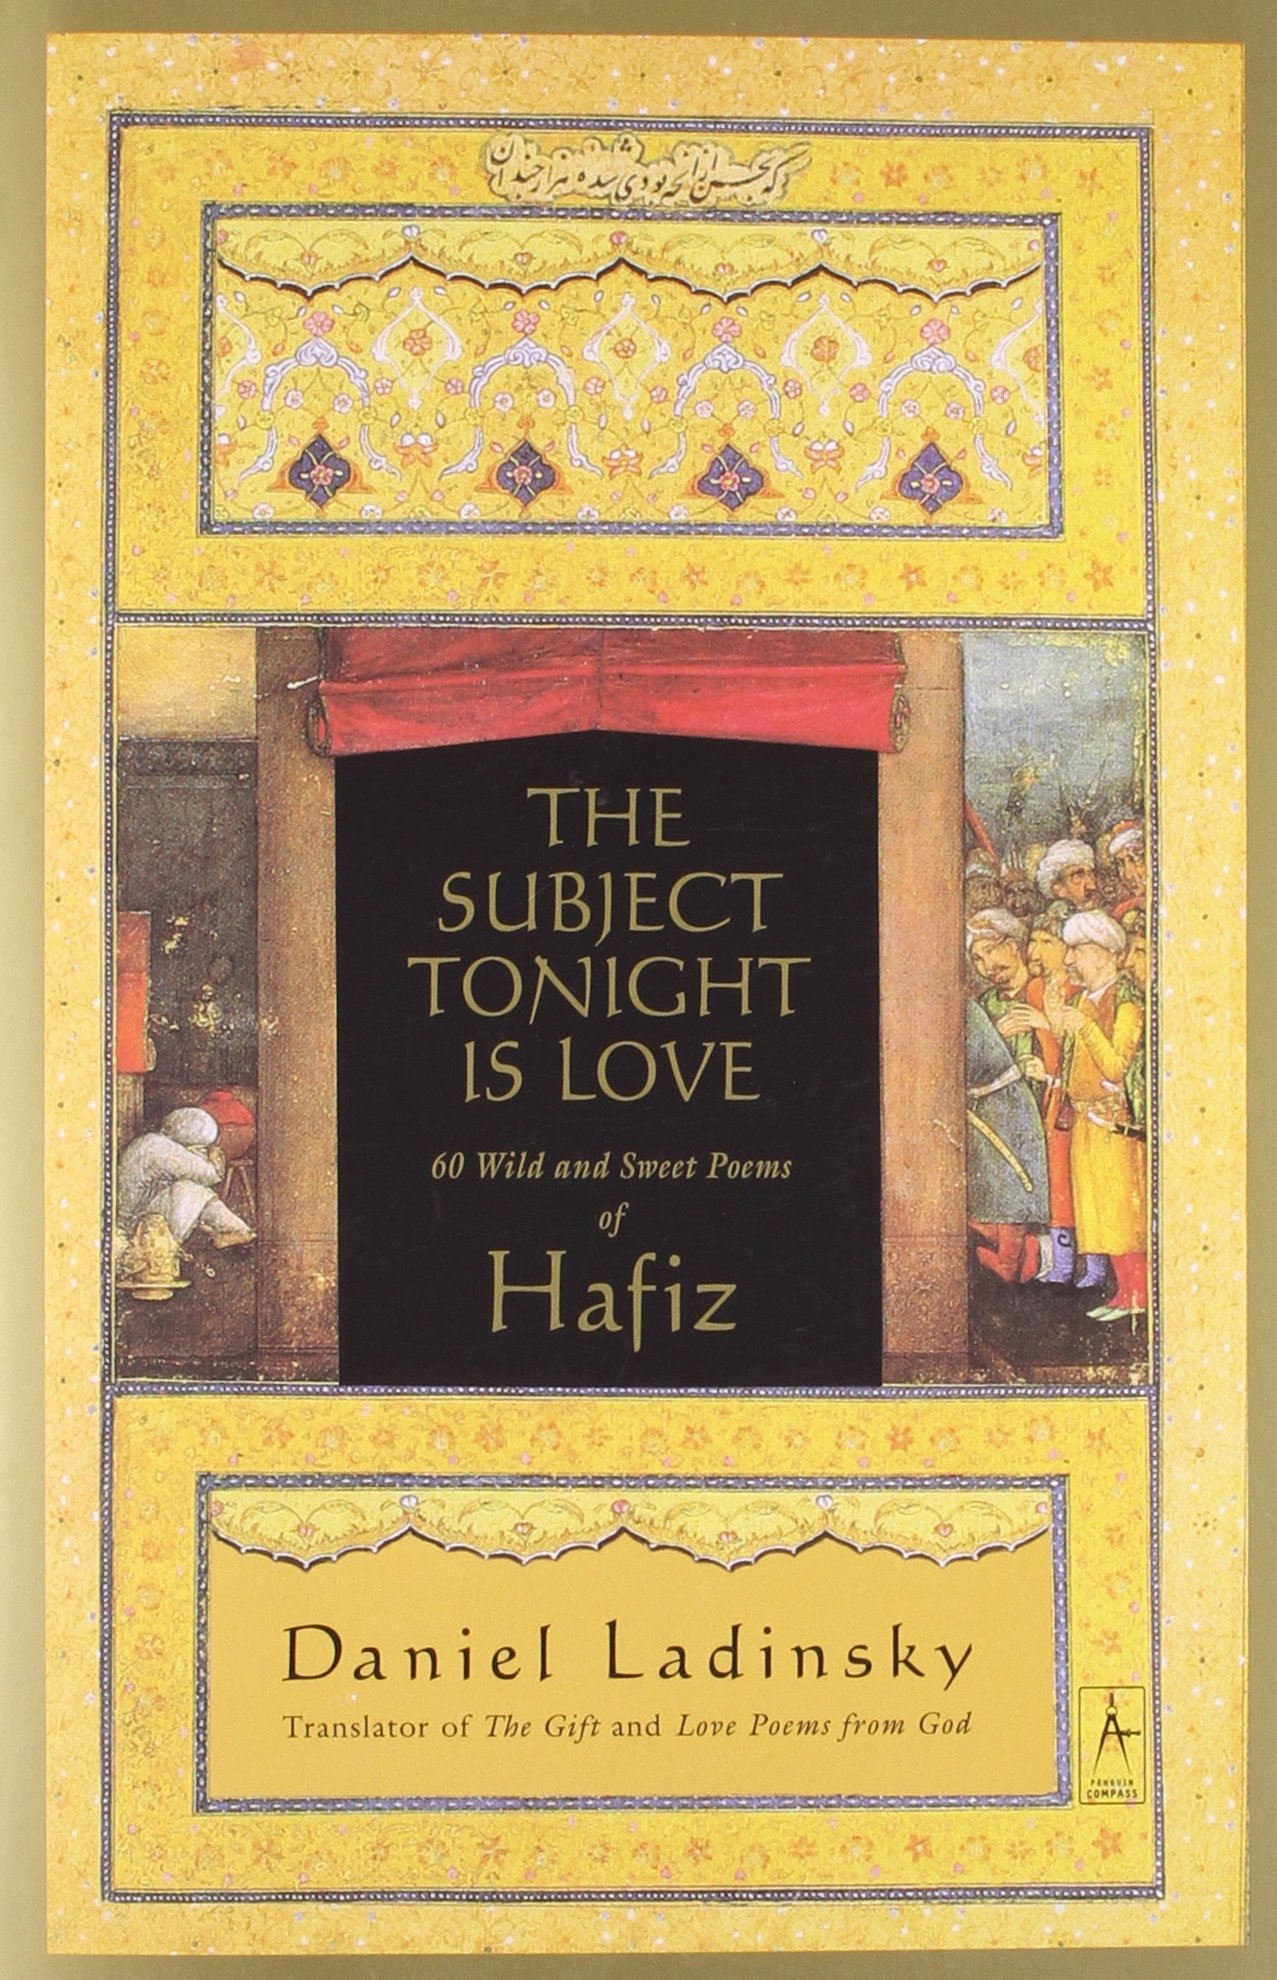 Amazon.com: The Subject Tonight Is Love: 60 Wild and Sweet Poems ...